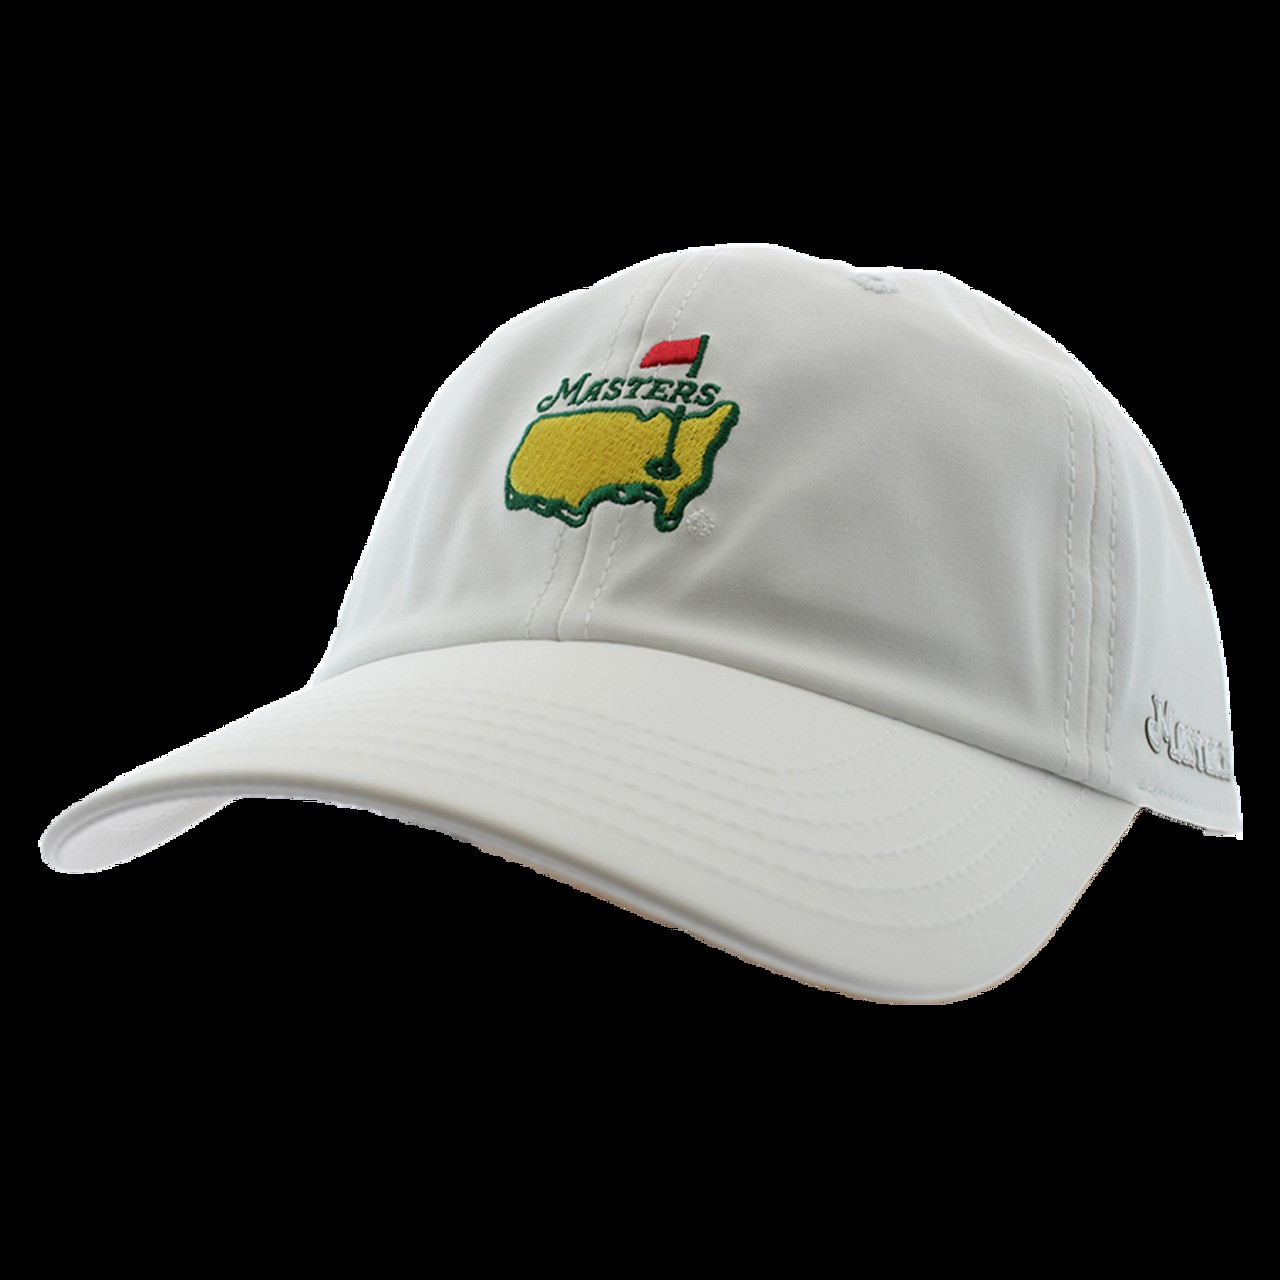 Masters Golf Tech Hat - White Reflective 3187dd9e0273